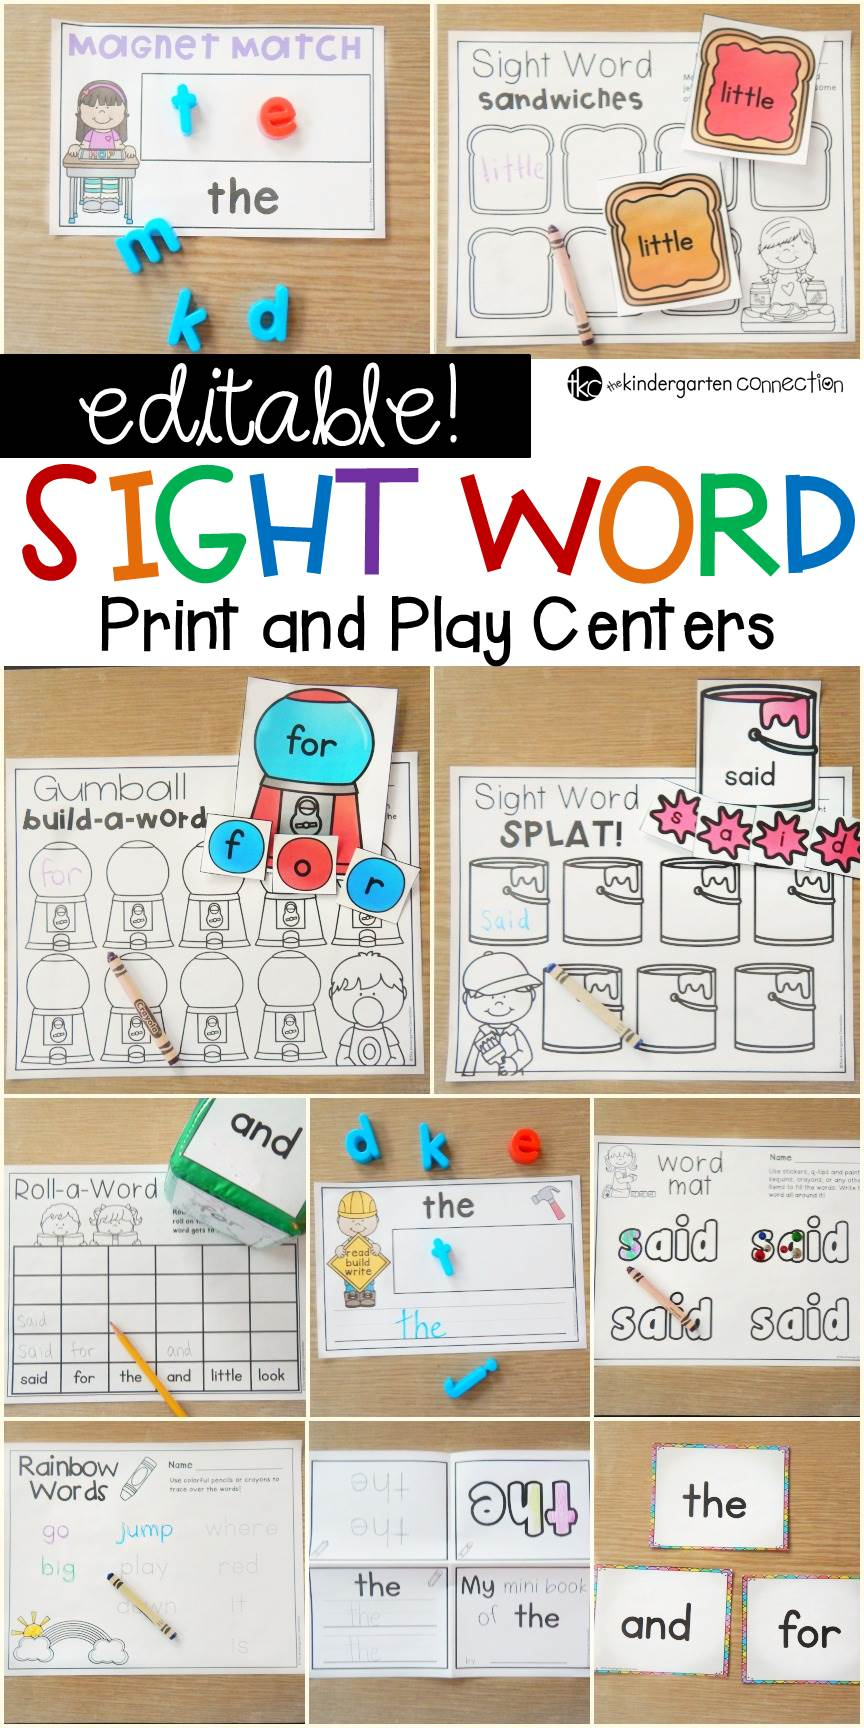 Editable Sight Word Centers for Kindergarten